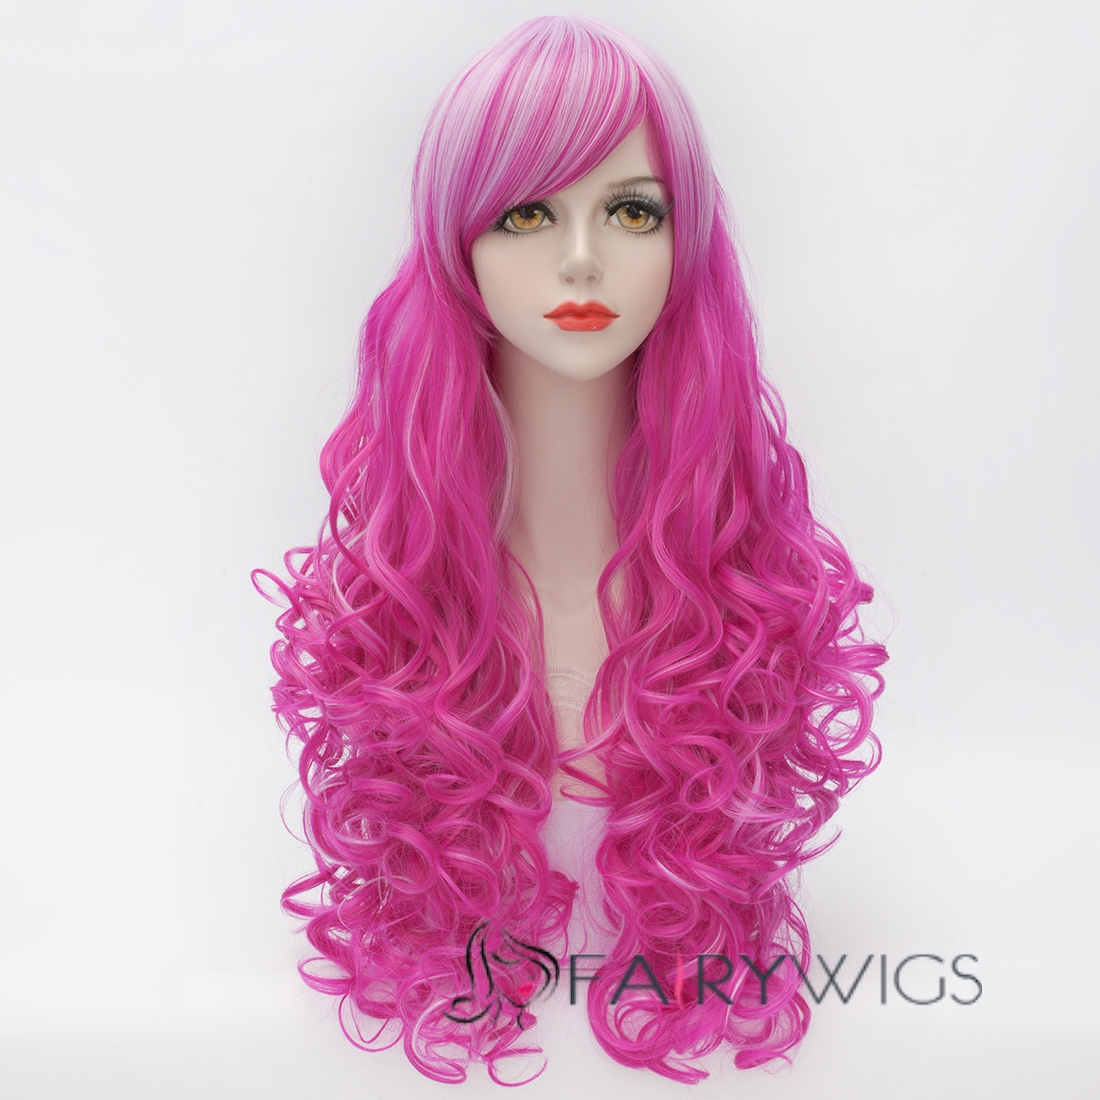 Hot Pink Long Curly Lolita Wig 28 Inches Fairywigs Com